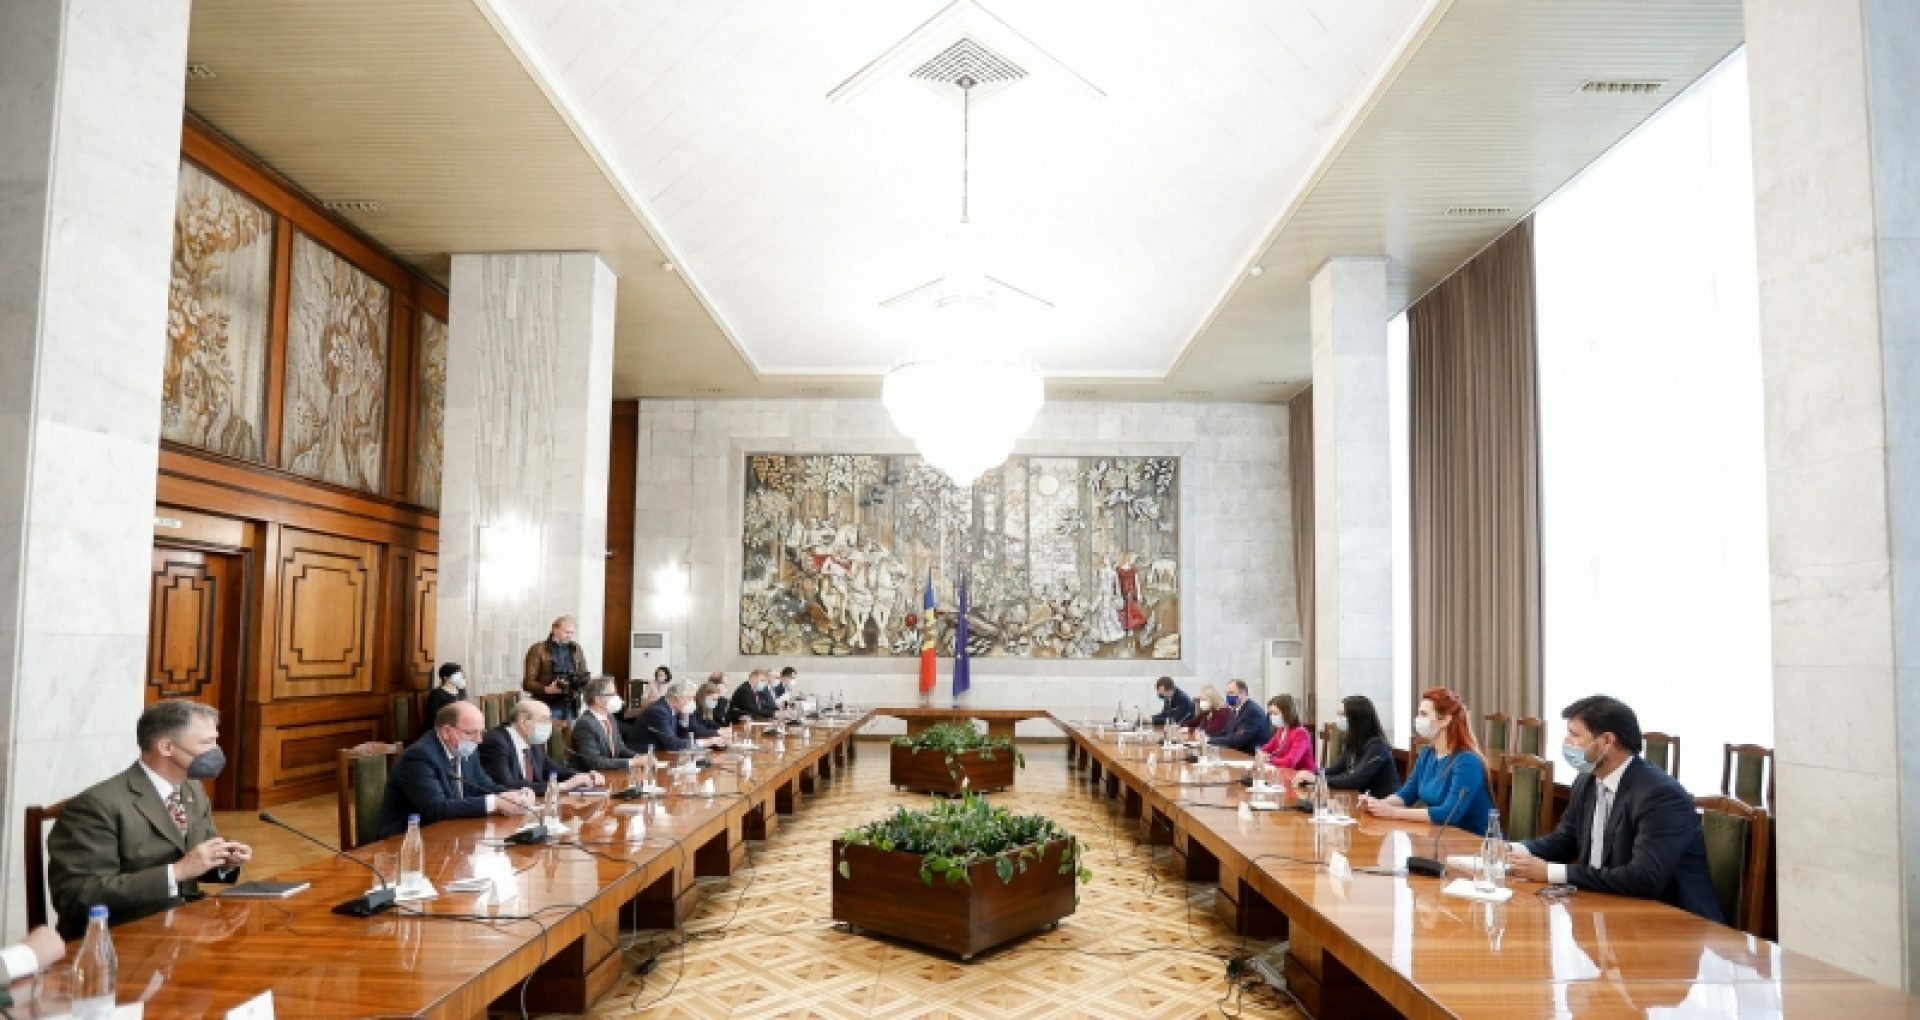 President Sandu Accuses the Parliament of Usurping the State Power and Calls on International Community to Monitor the Situation